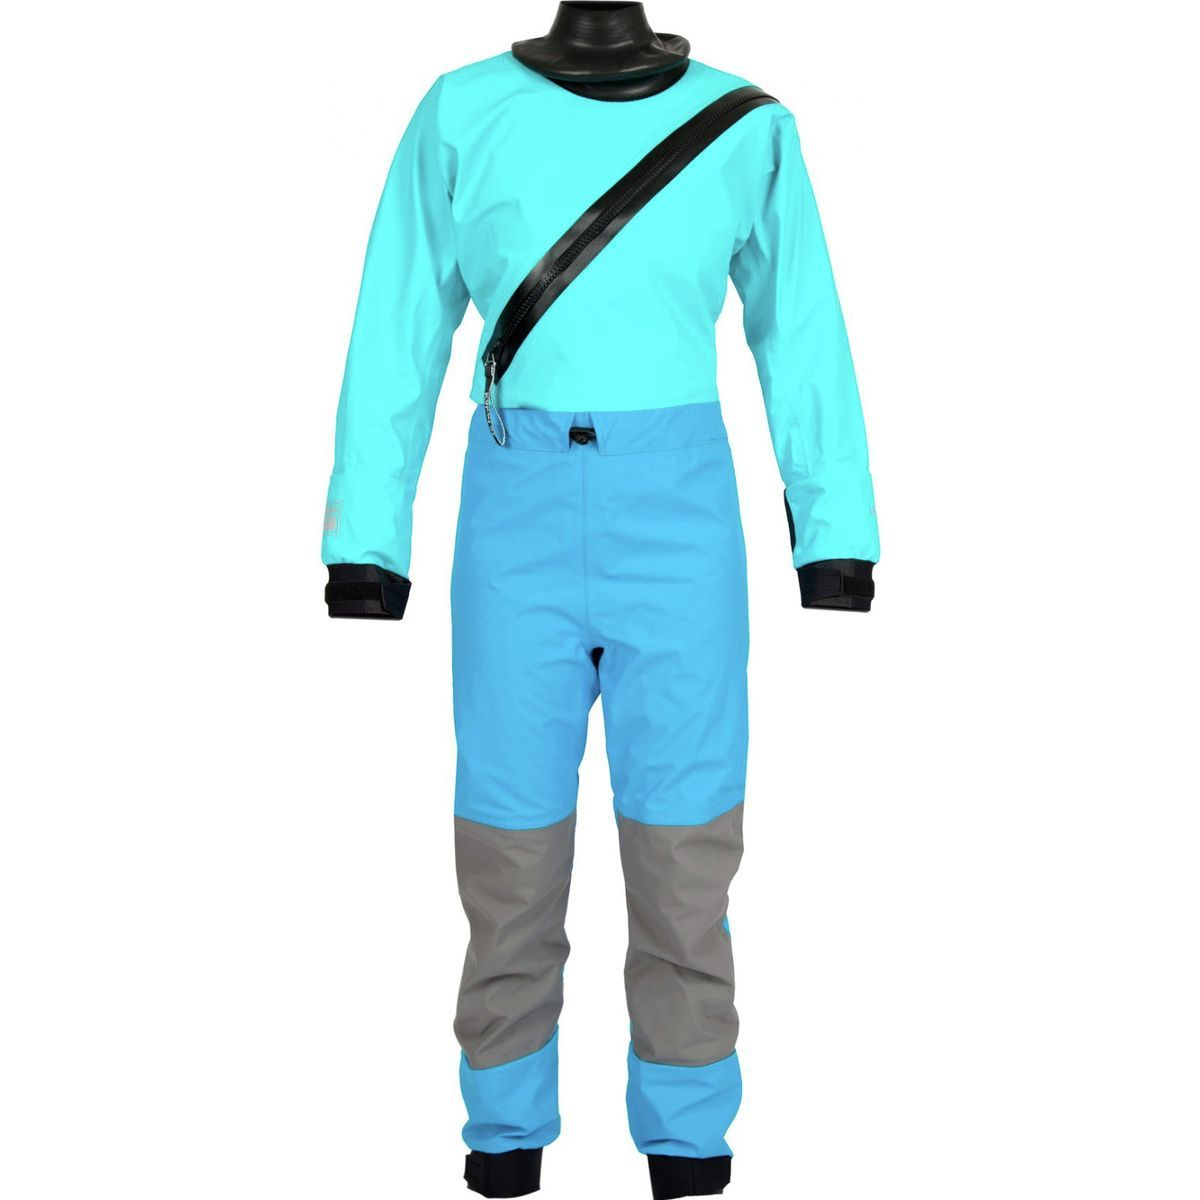 Kokatat Hydrus 3.0 Swift Entry Dry Suit - Women's